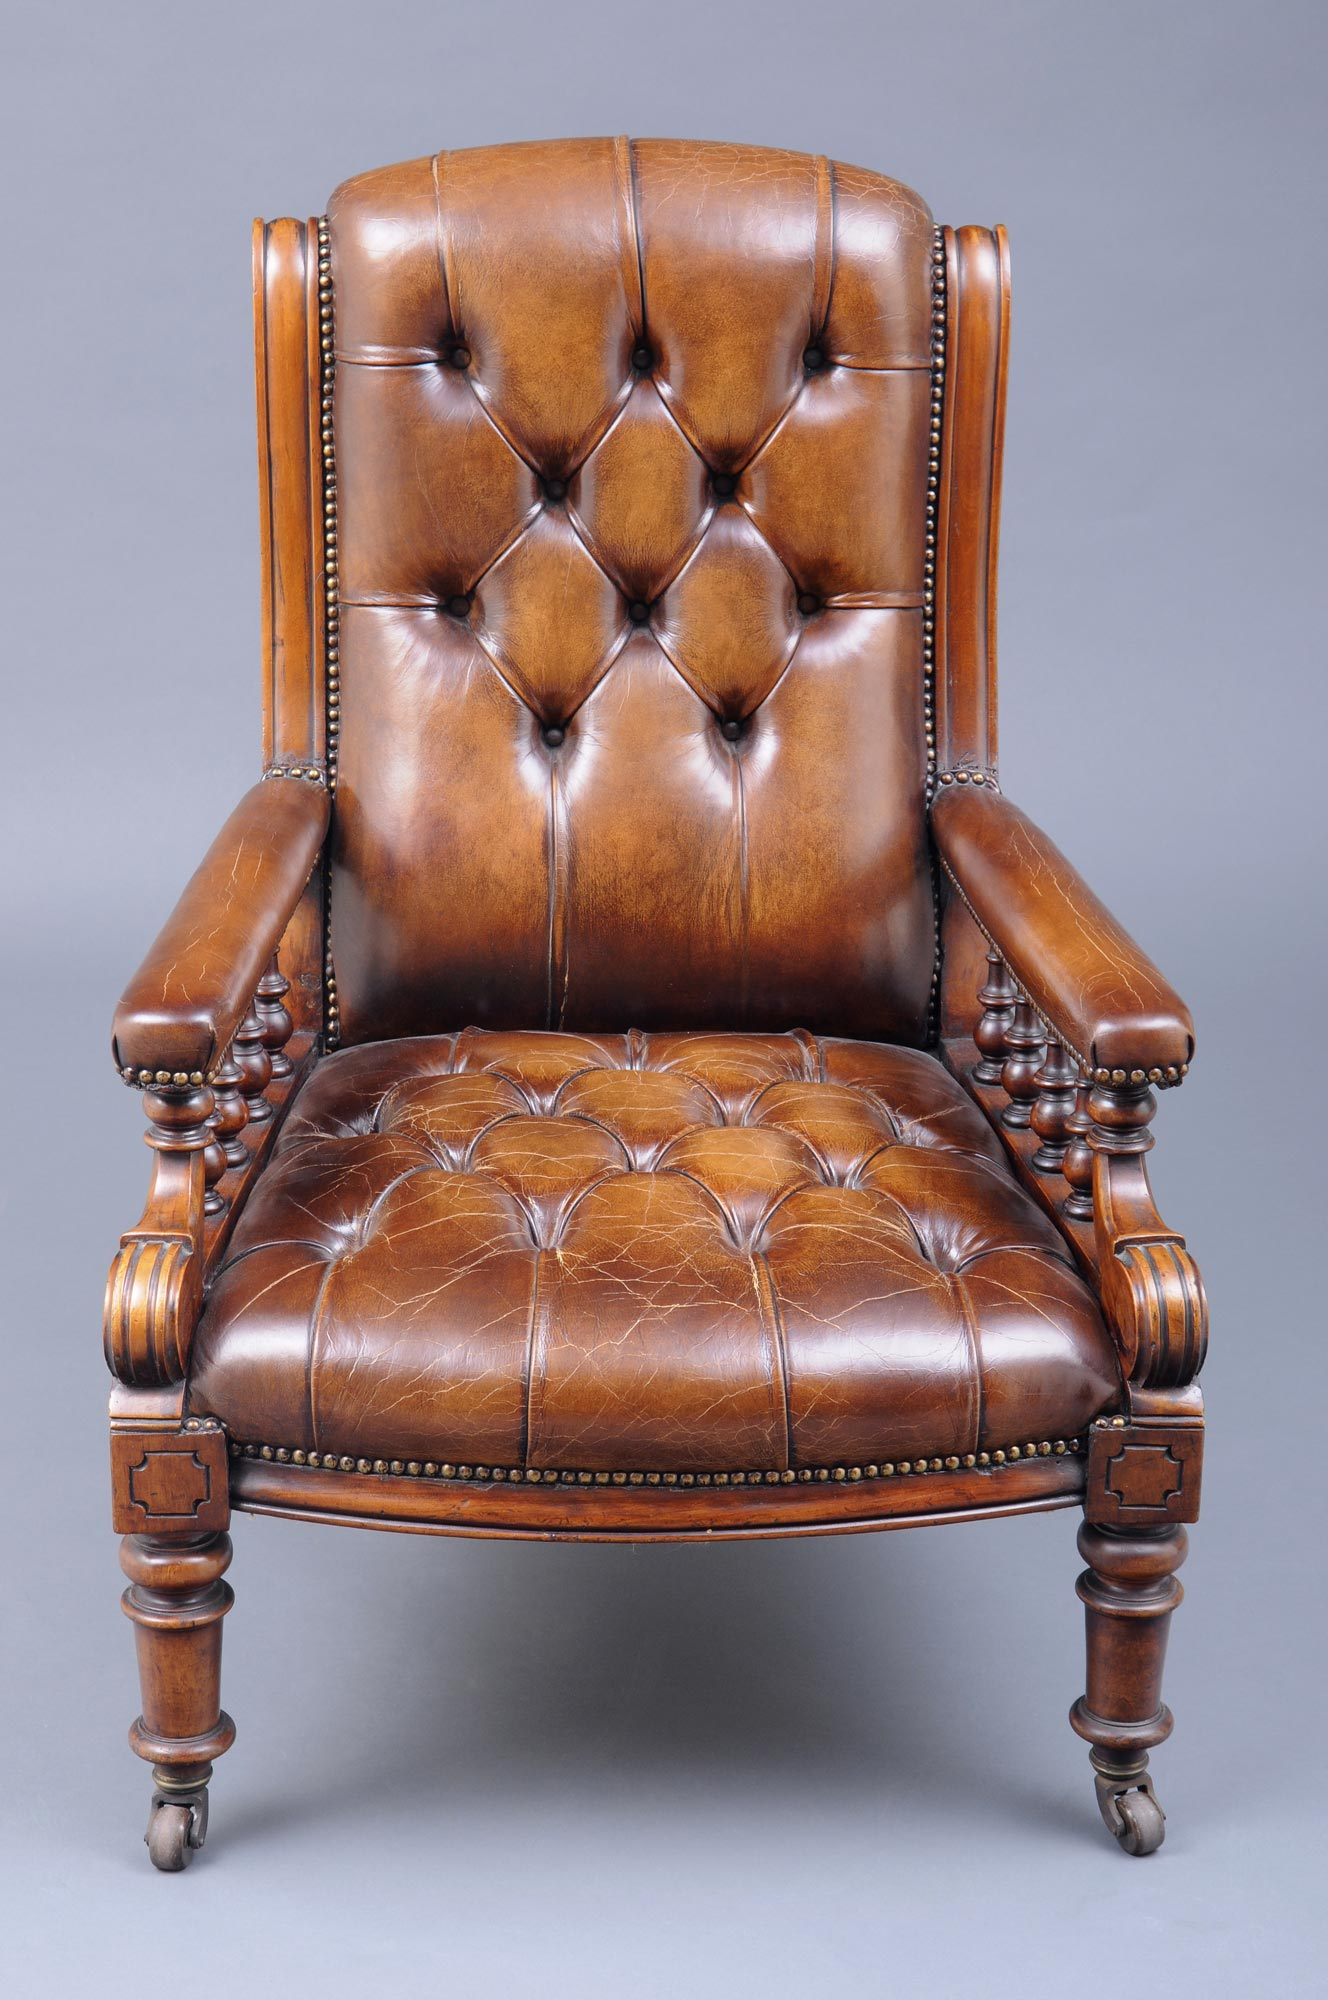 Antique victorian armchair -  English Antique Victorian Mahogany And Leather Library Armchair